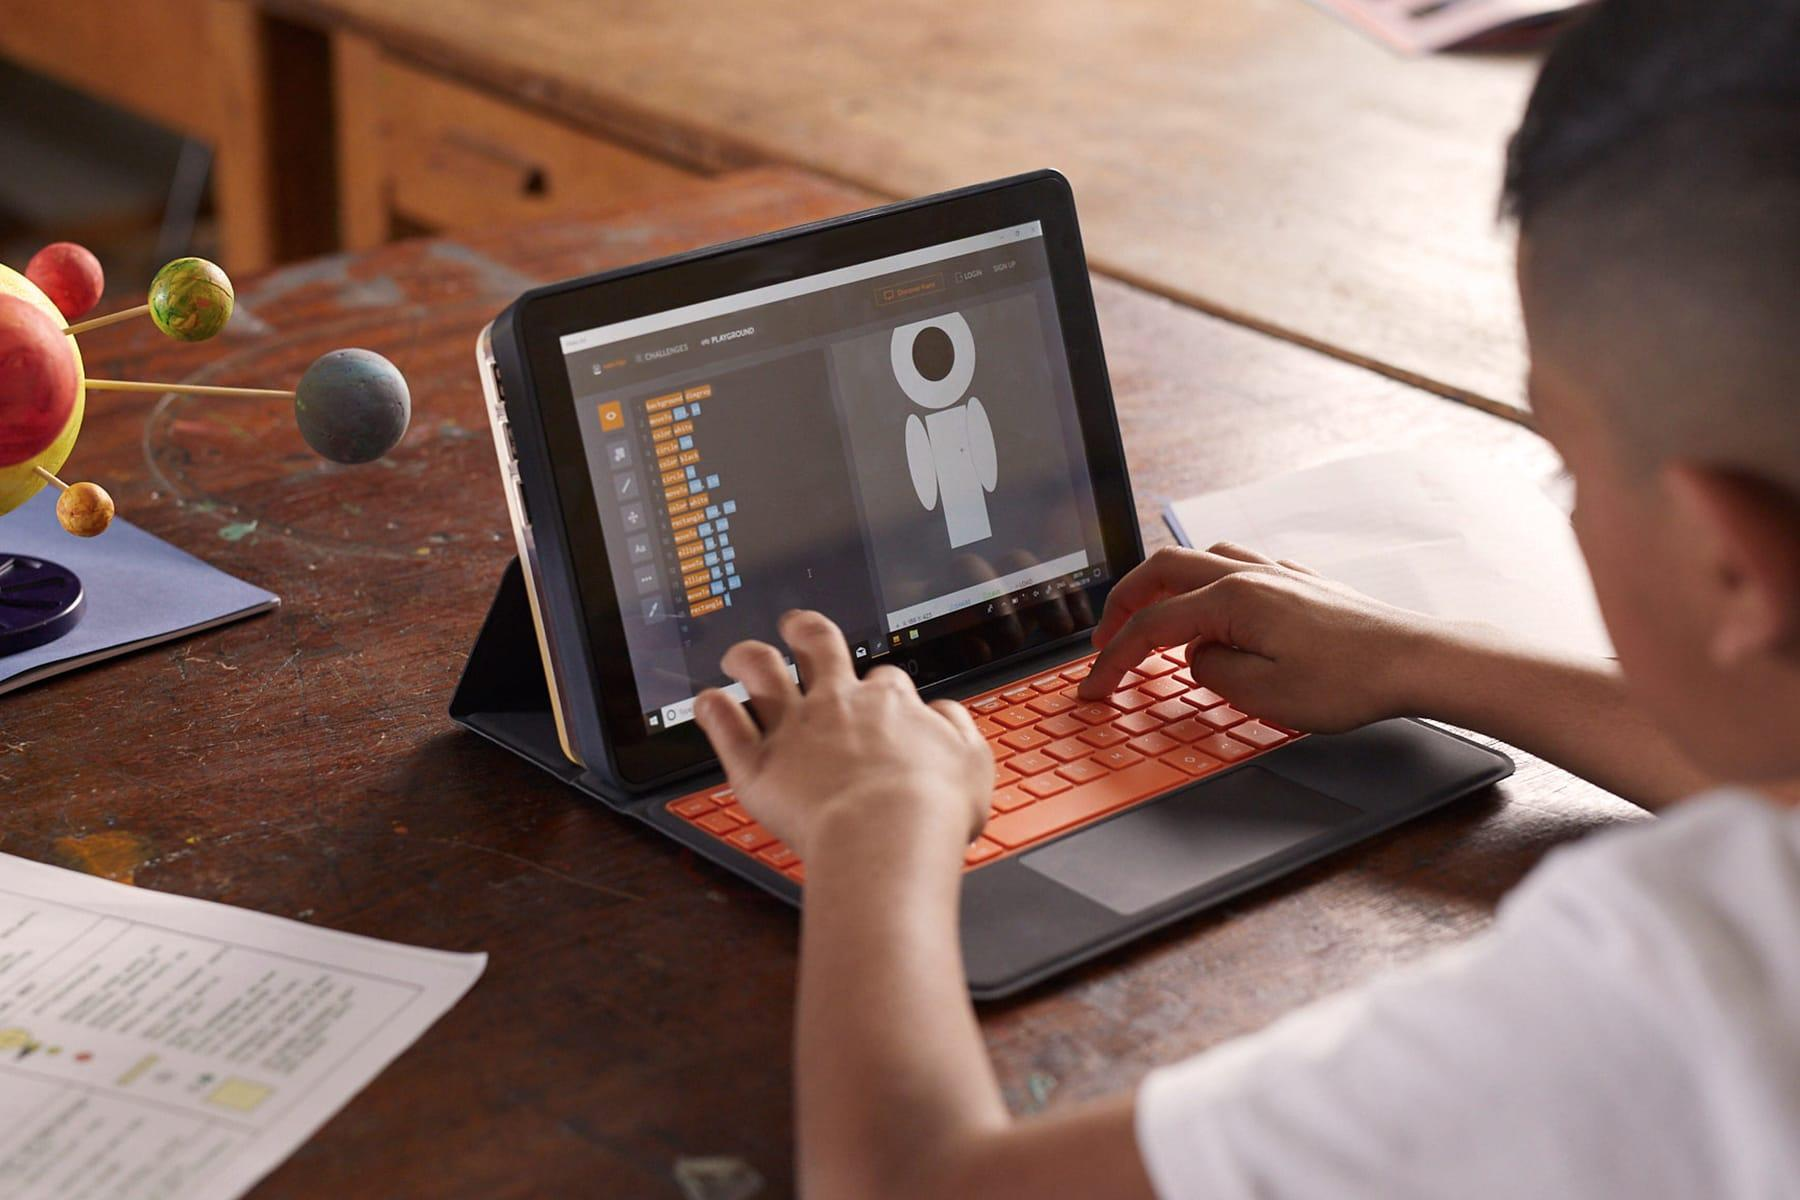 Kano unveils its first build-it-yourself Windows 11 computer